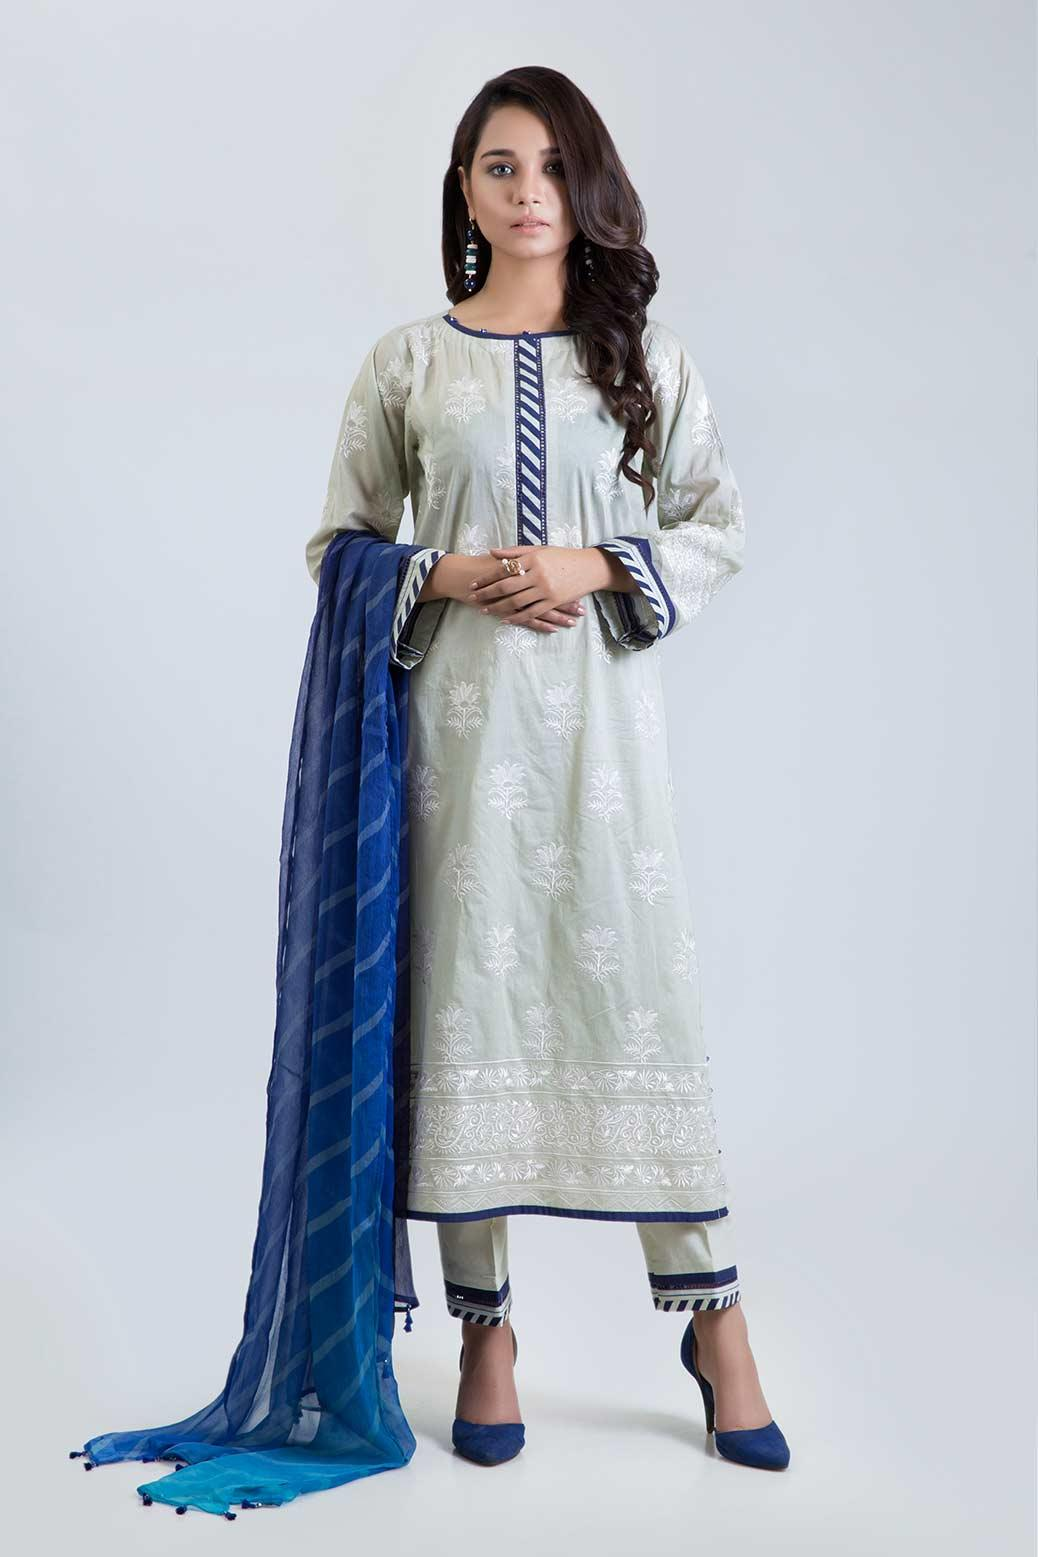 51248404c6 DYED EMBROIDERED LAWN SHIRT: 3.00 M-DIGITAL PRINTED CHIFFON DUPATTA: 2.50 M-